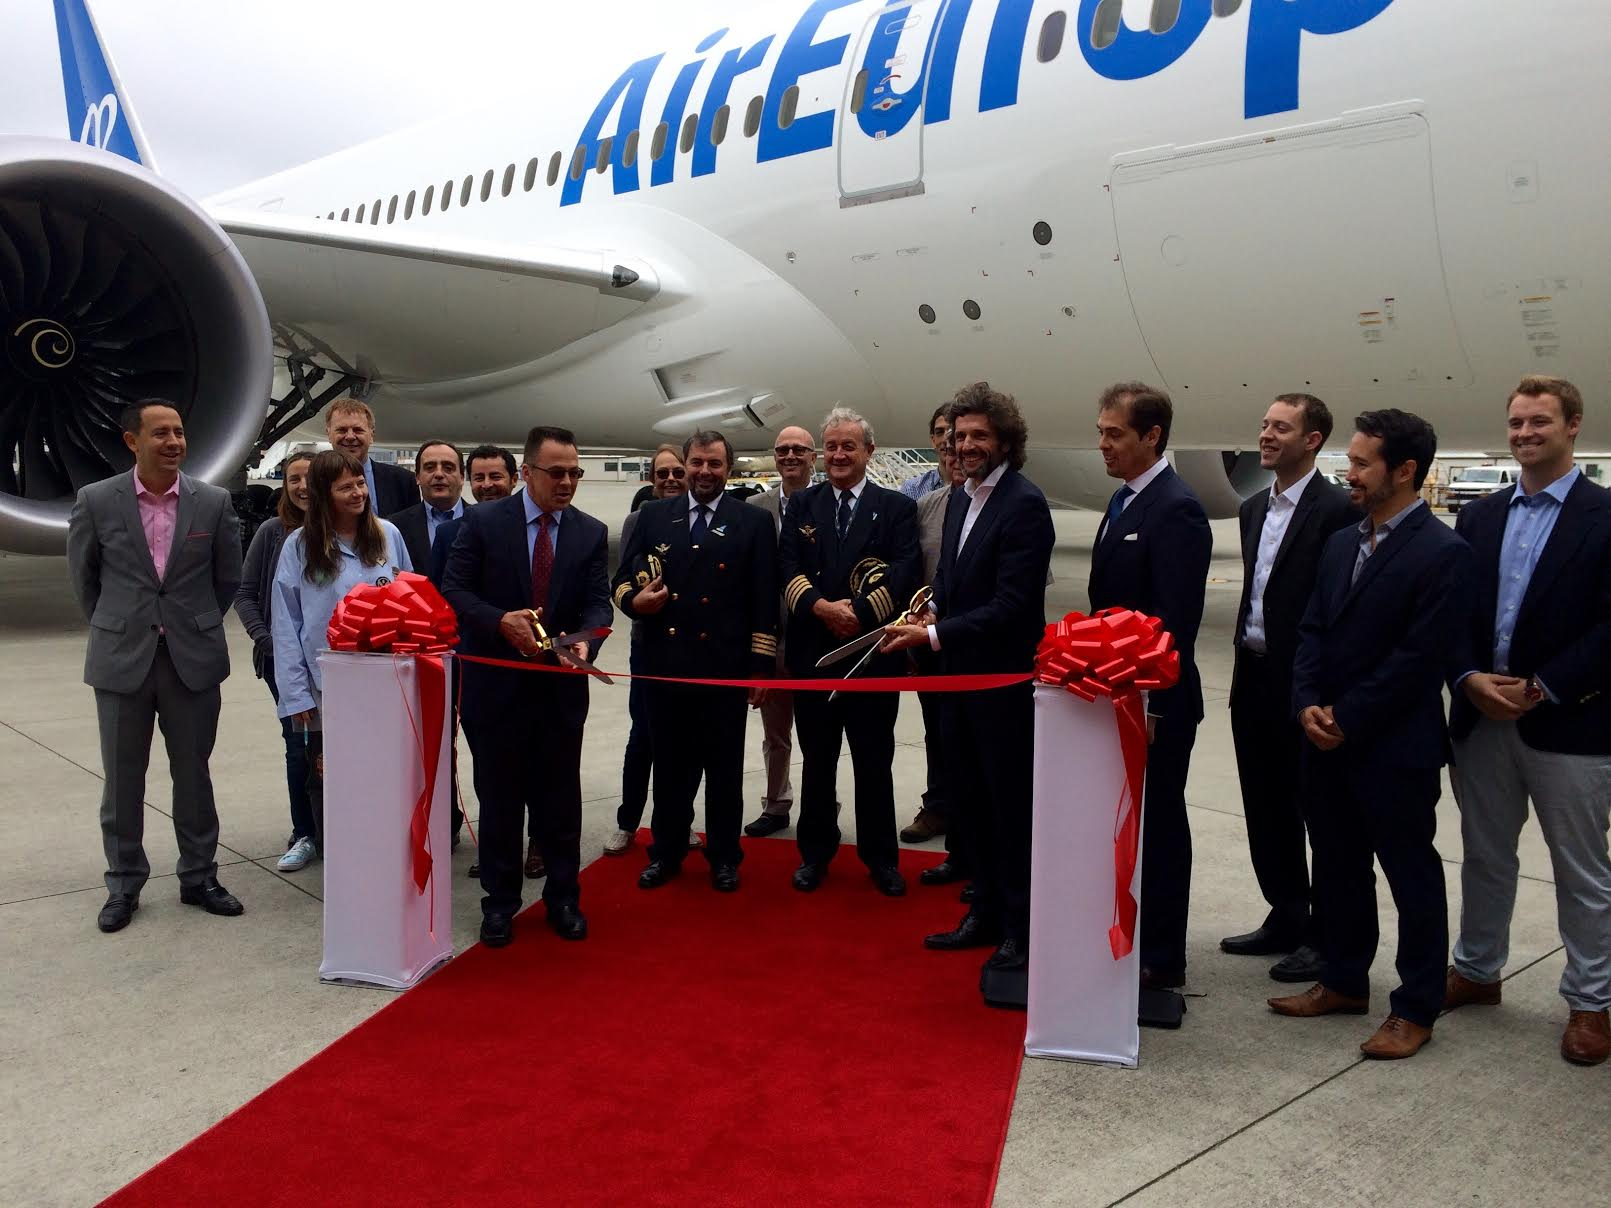 dreamliner air europa